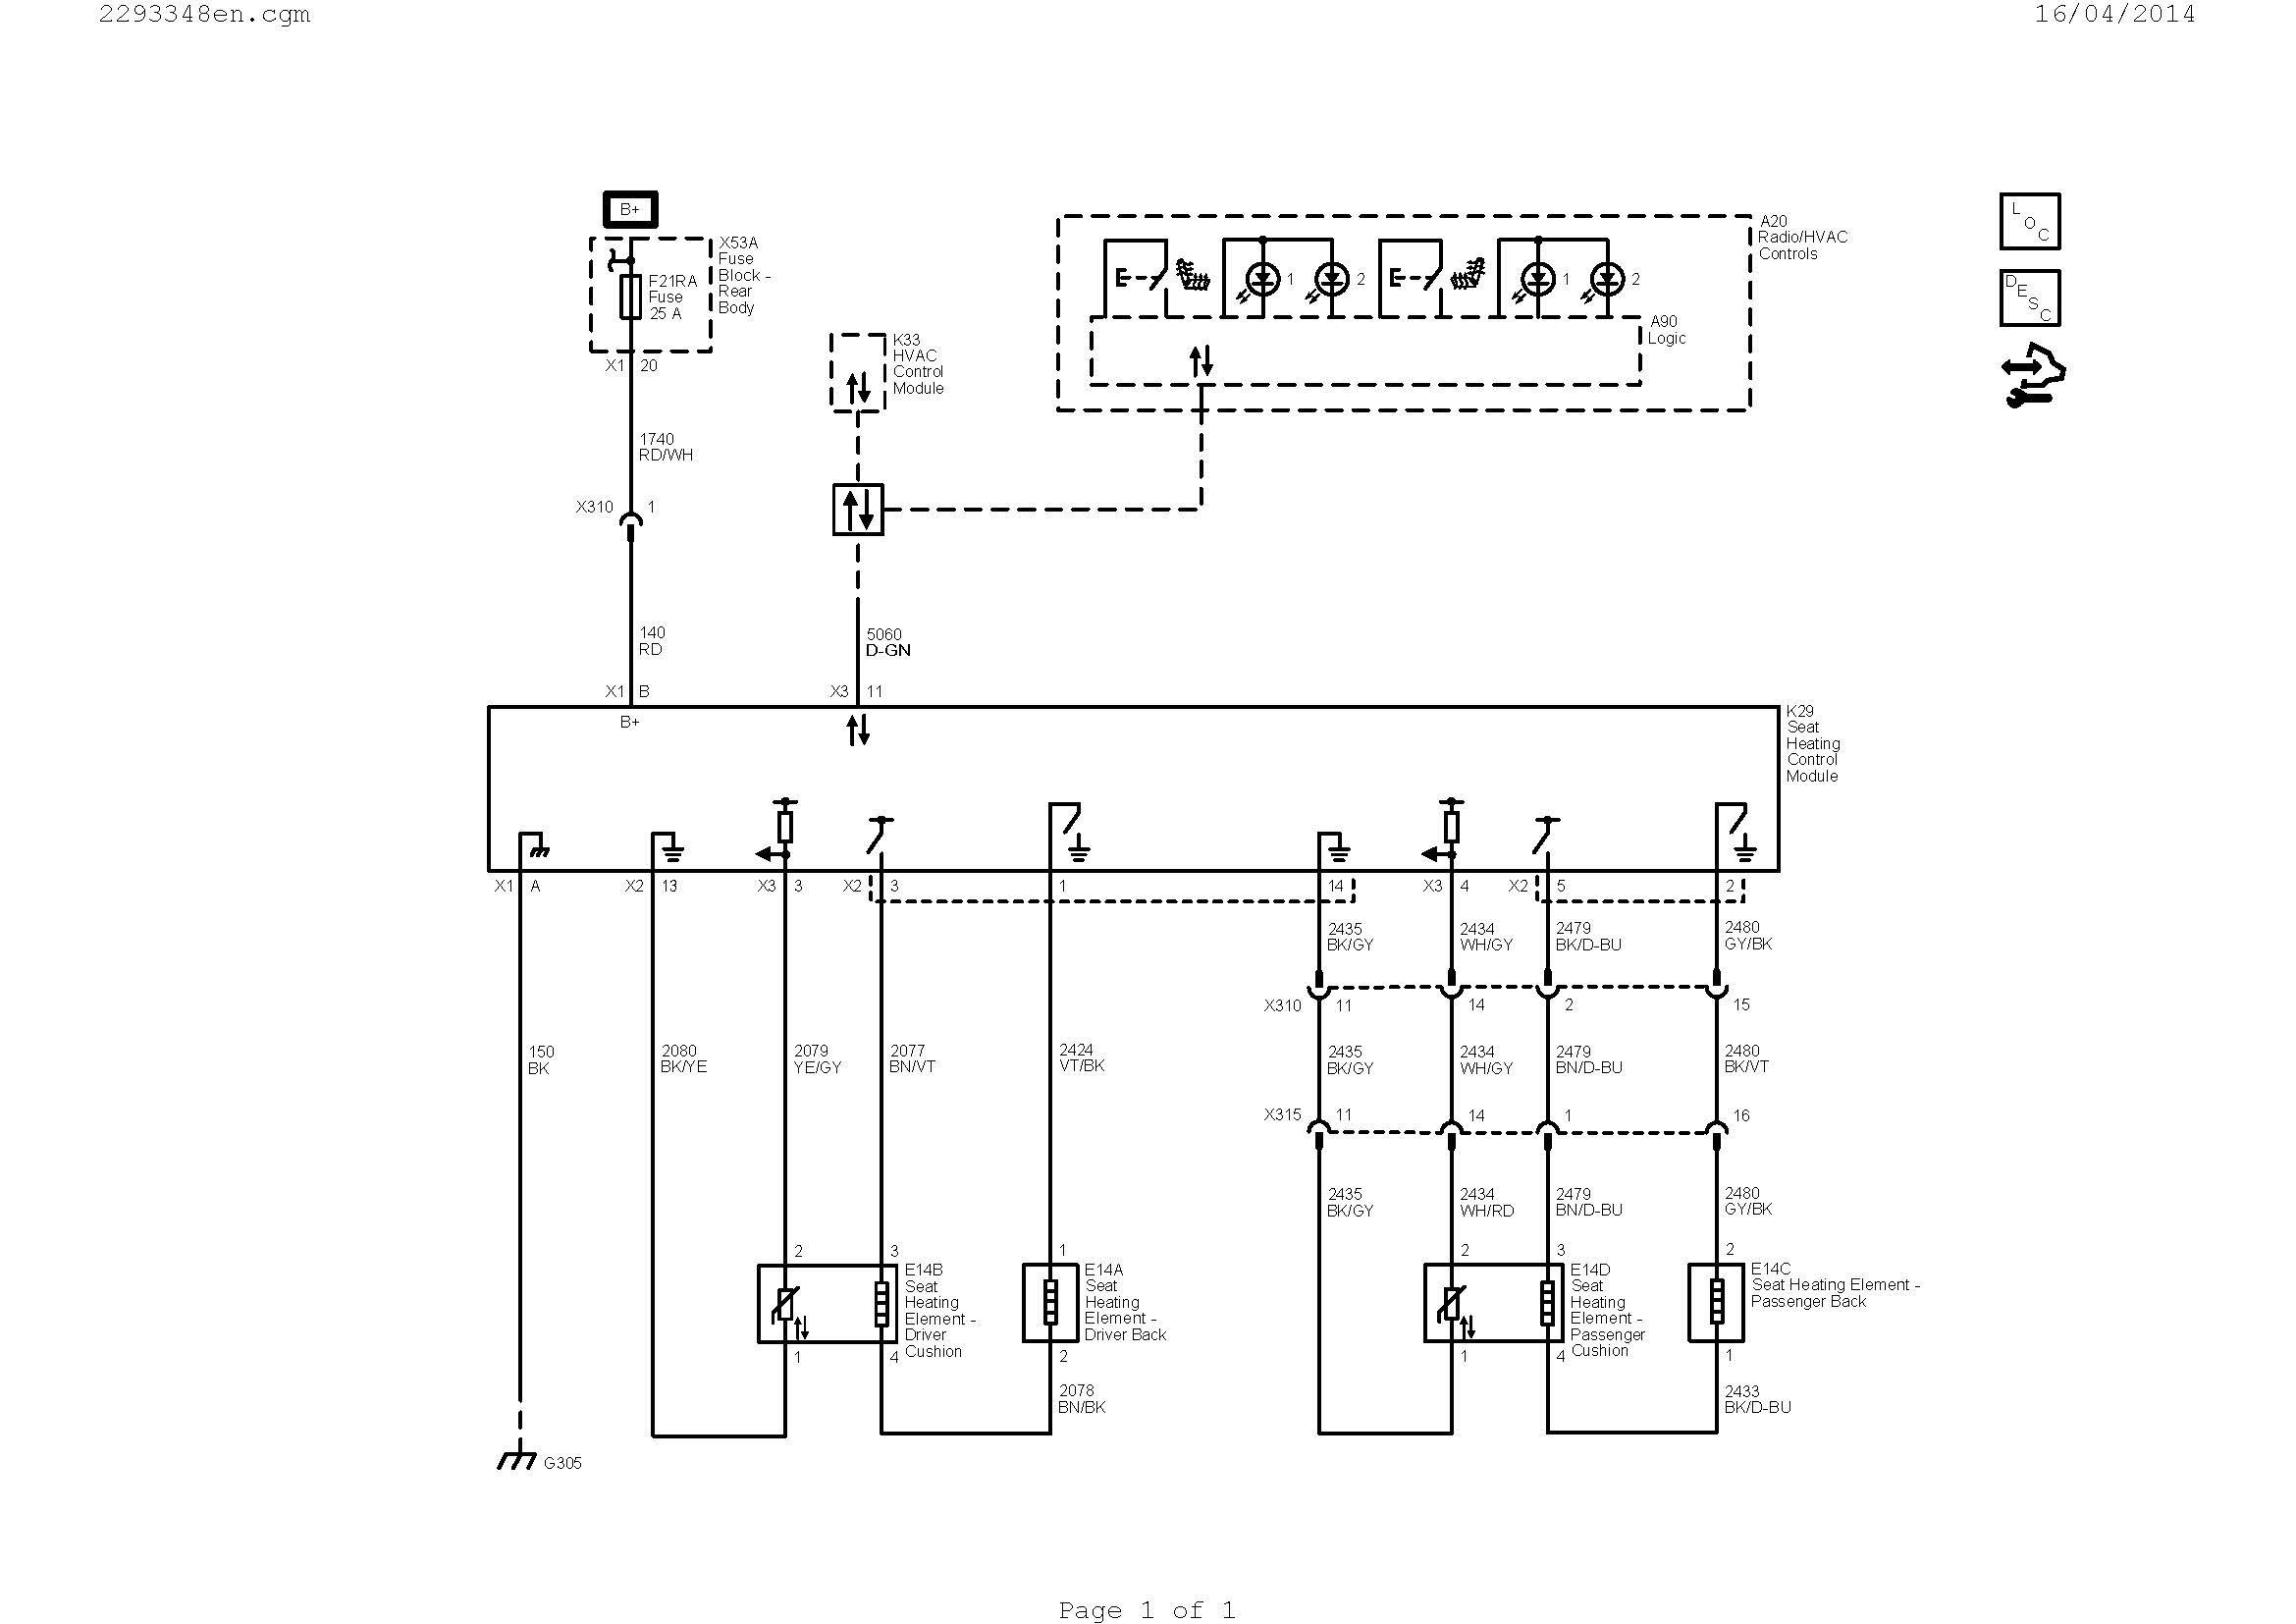 control relay wiring diagram Download-fan wiring diagram Collection Wiring Diagram For Changeover Relay Inspirationa Wiring Diagram Ac Valid Hvac DOWNLOAD Wiring Diagram 12-o